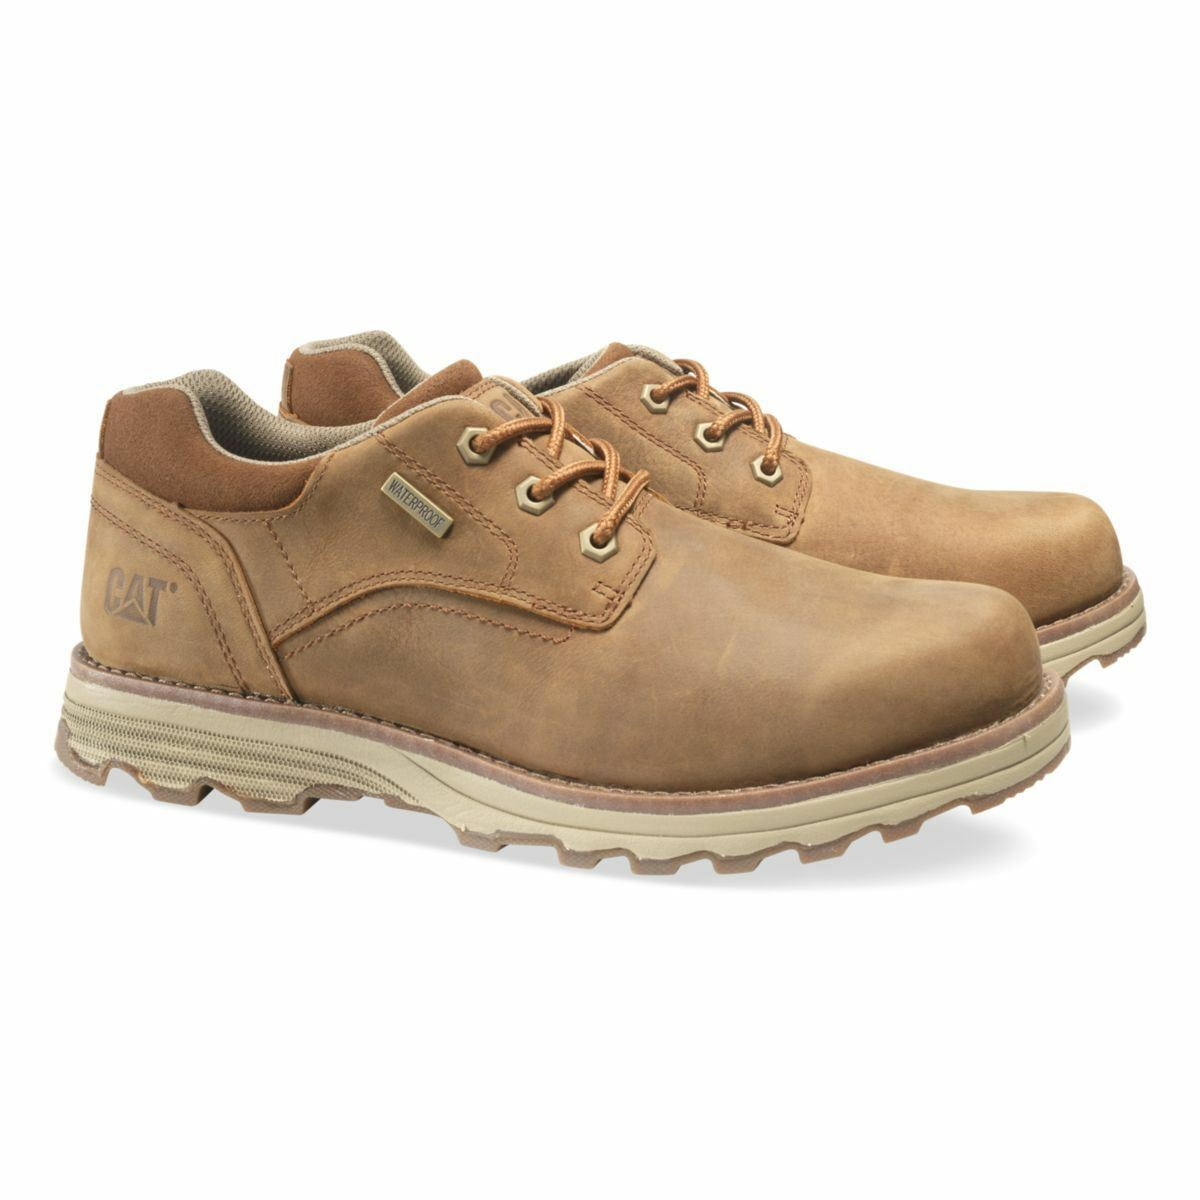 Caterpillar schuhe Mens Prez Waterproof braun Sugar P720683